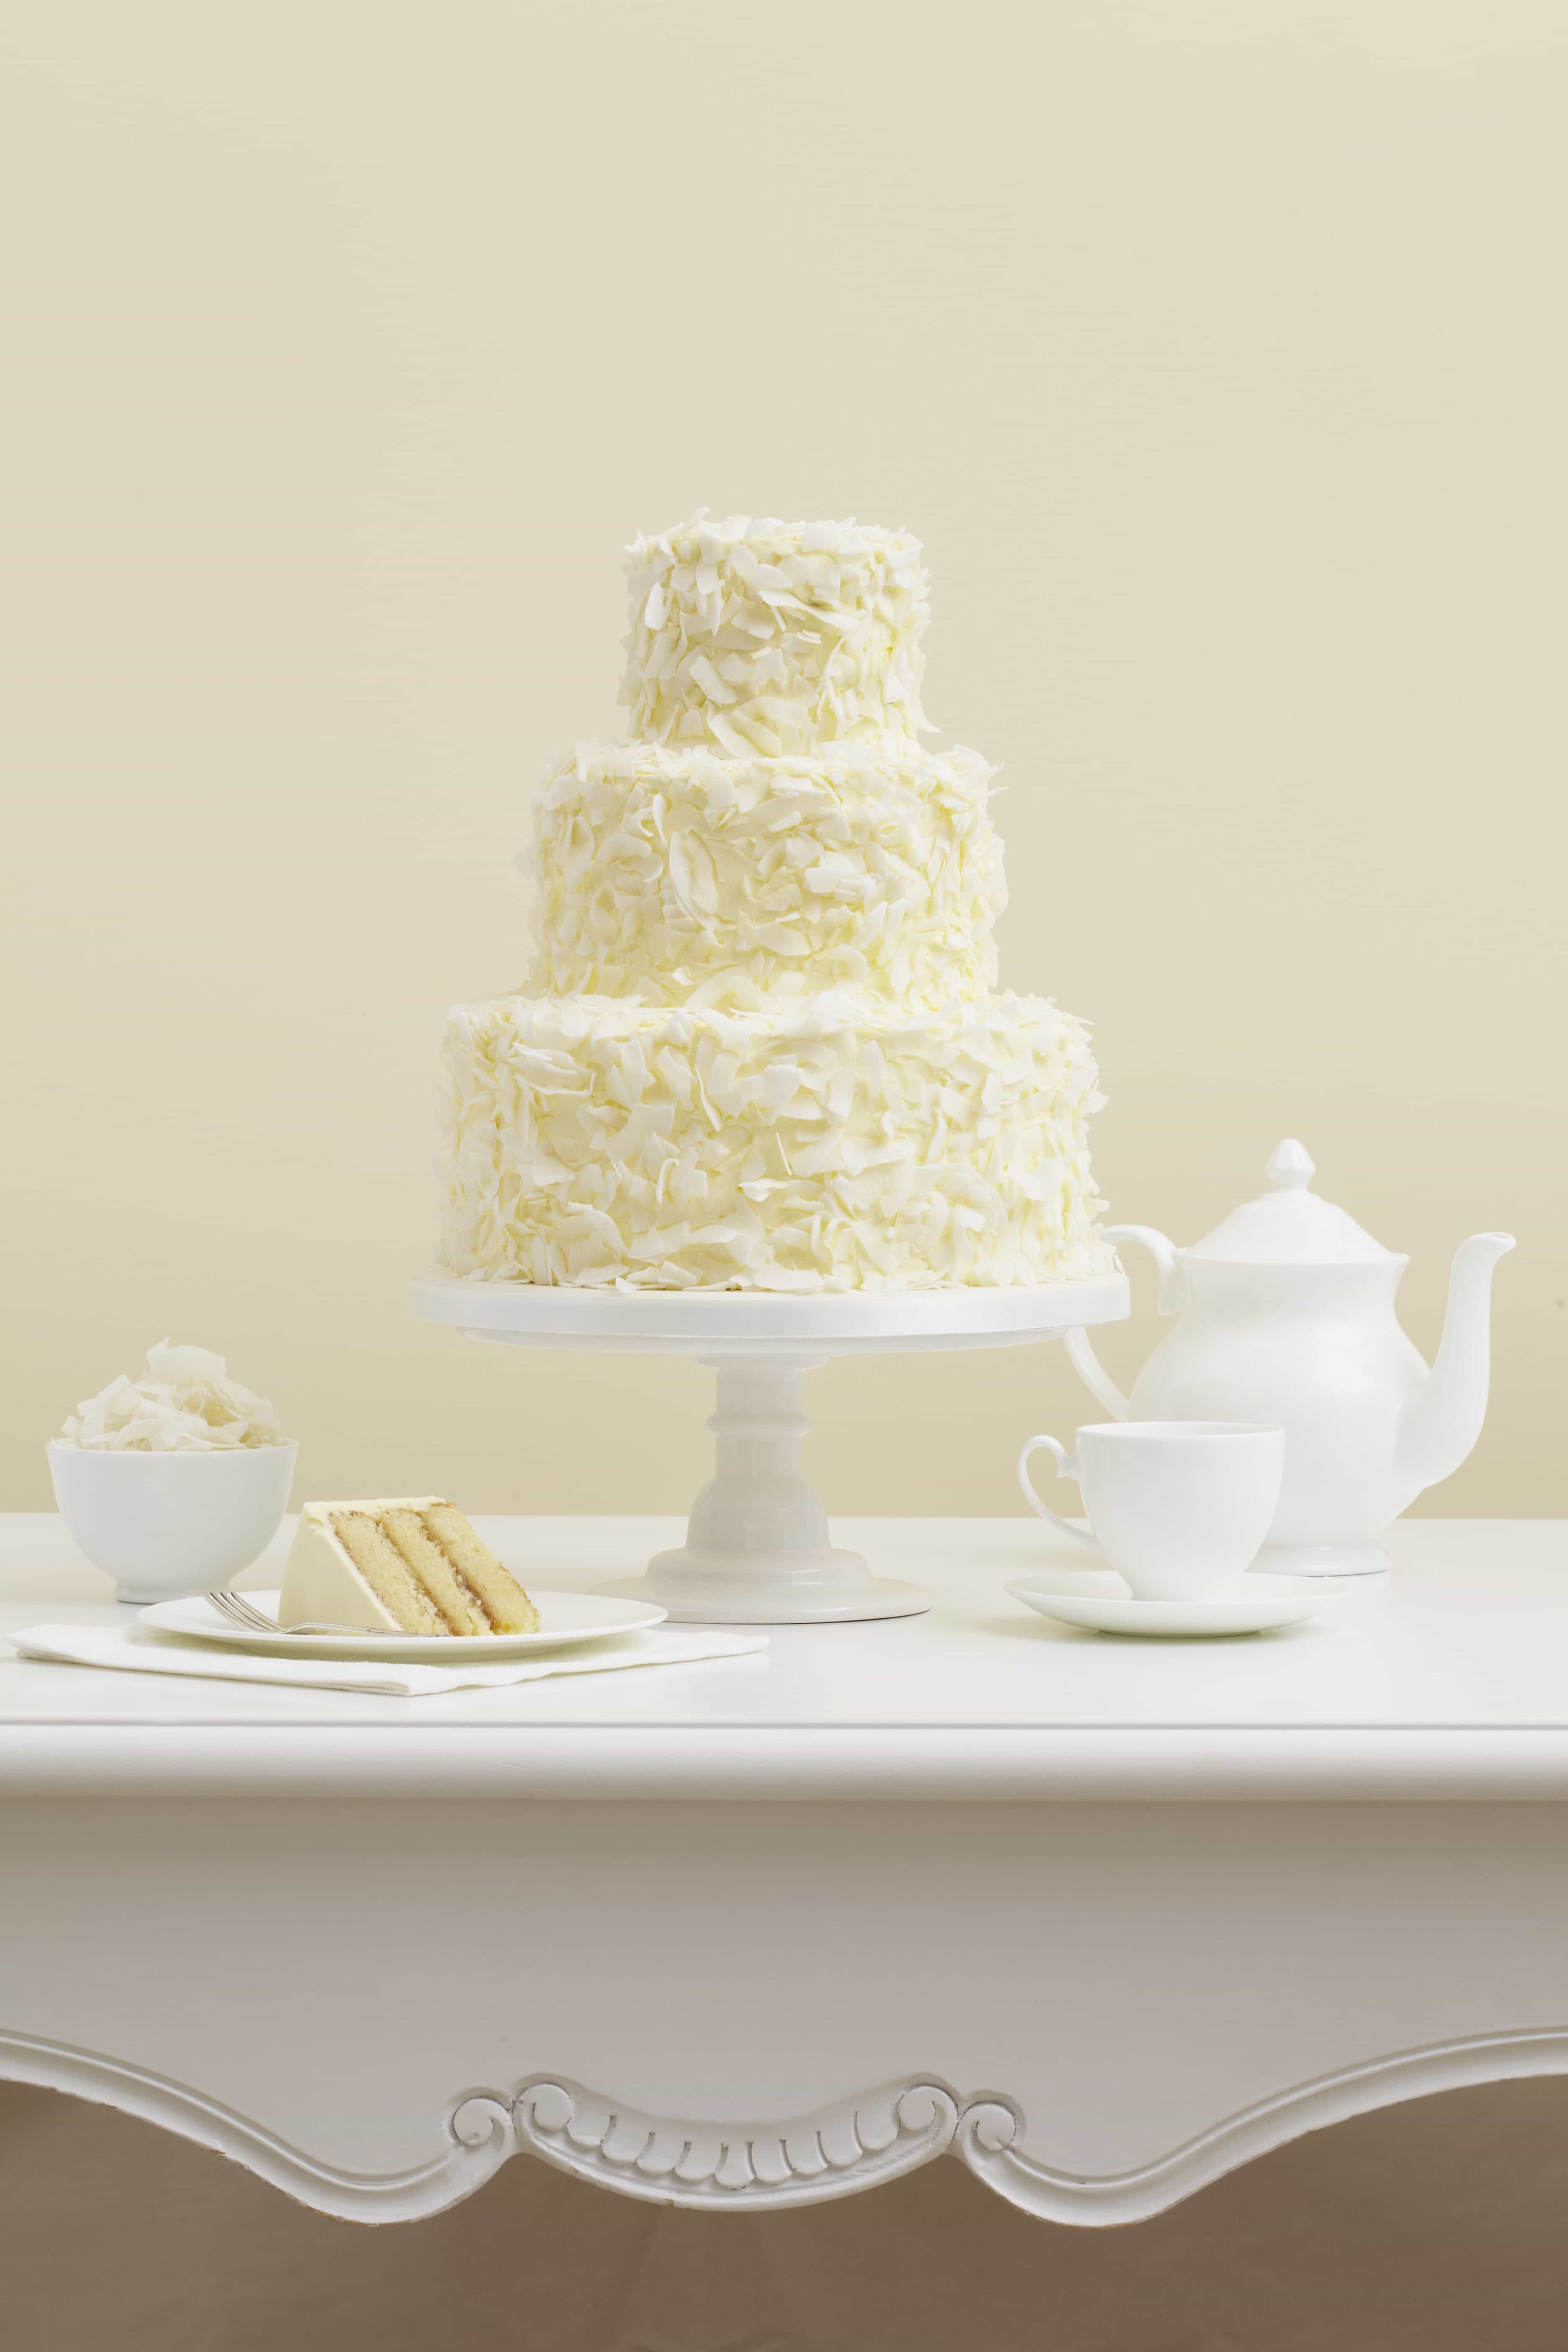 Classic Coconut Wedding Cake (Image 4 of 16)